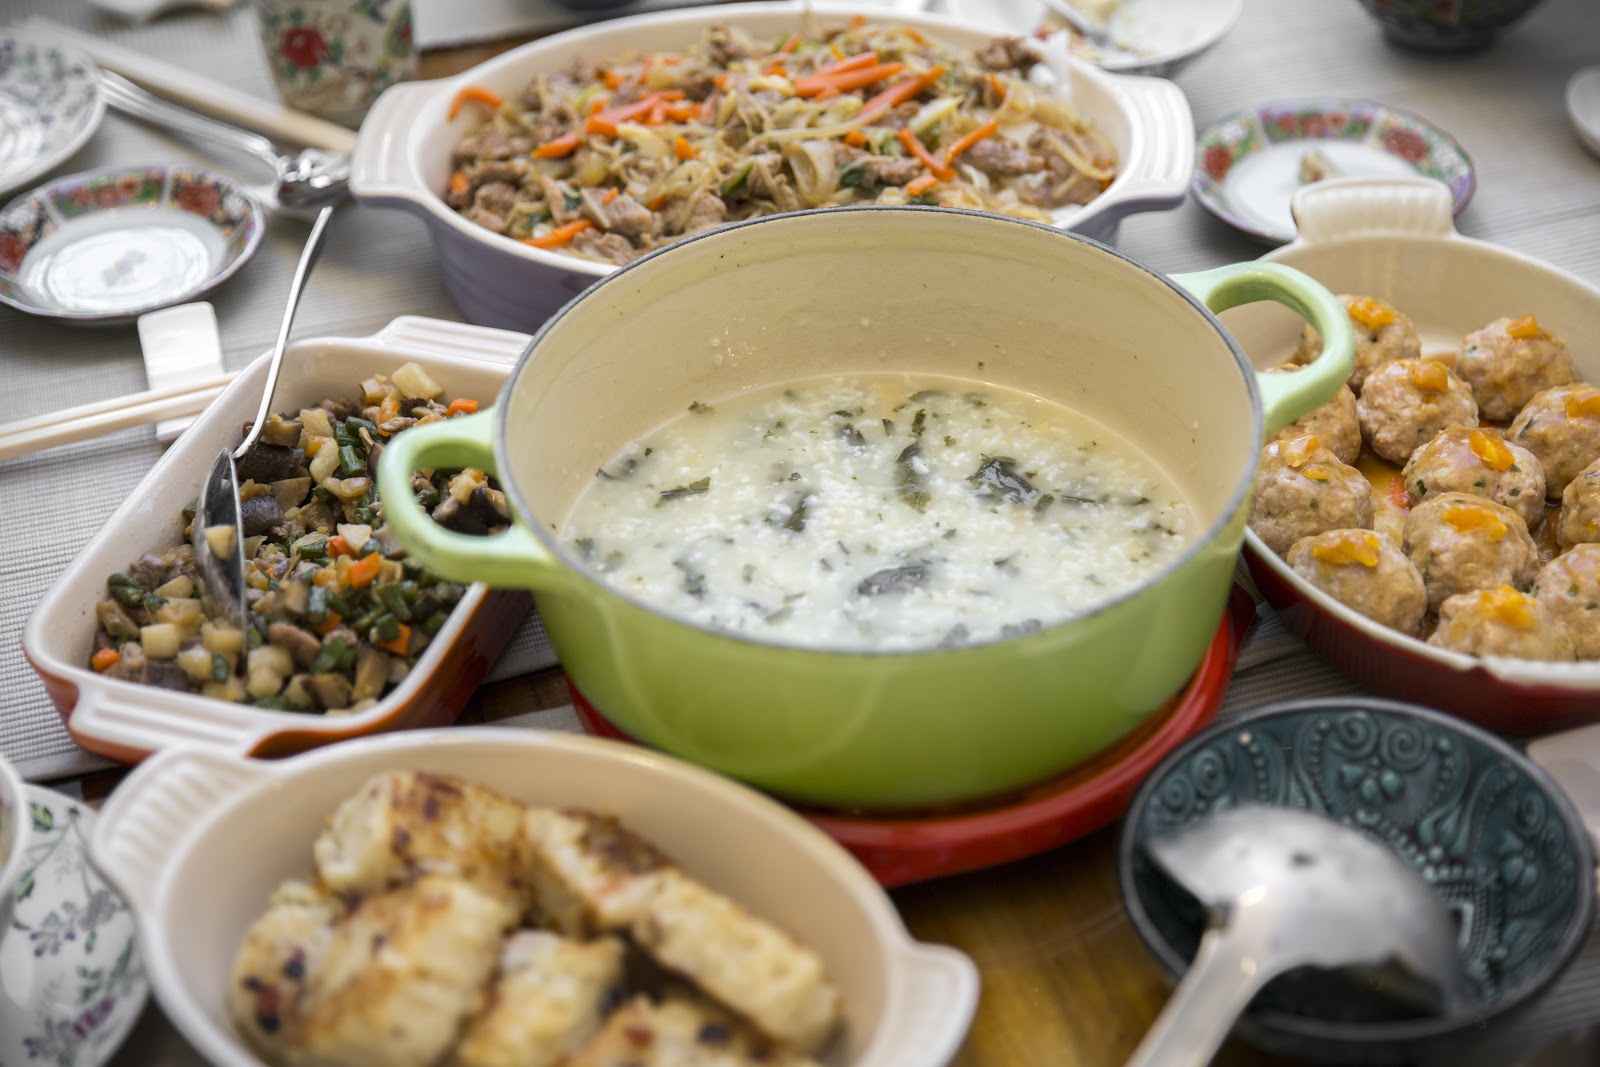 Delicious spread of Cantonese dishes